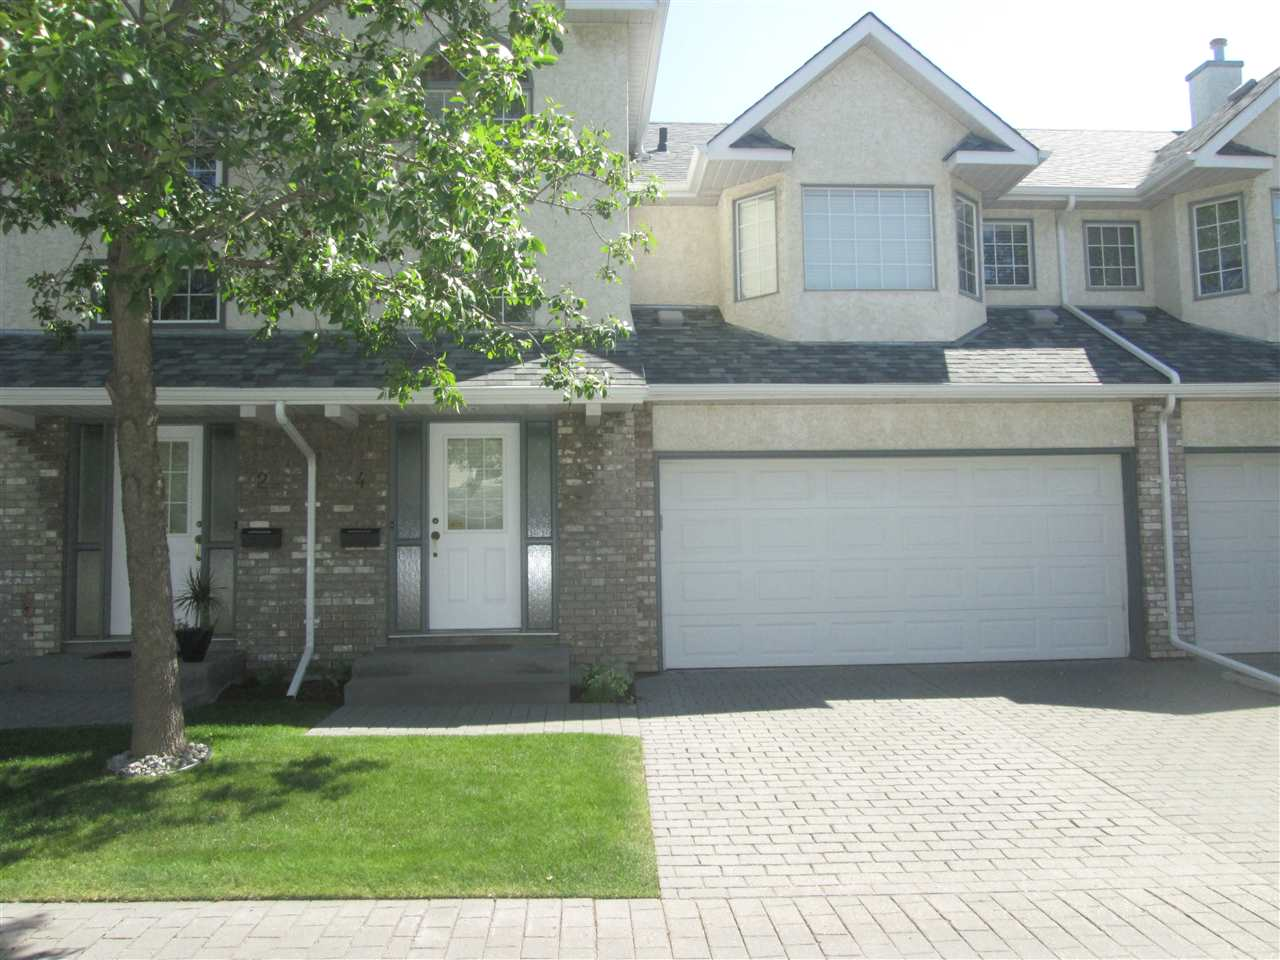 Well maintained air conditioned split level townhouse located in a wonderful complex development close to all amenities. Bright and functional kitchen with ceramic tile flooring, stainless steel fridge and sliding doors to the south facing maintenance free deck. Beautiful family room with vaulted ceilings , gas fireplace and plenty of natural light. Large master bedroom features a walk in closet, 4 piece ensuite & jetted tub . Two additional bedrooms & 4 piece bath . Partial basement is unfinished and is perfect for extra storage items. great curb appeal and double garage round out this great complex.